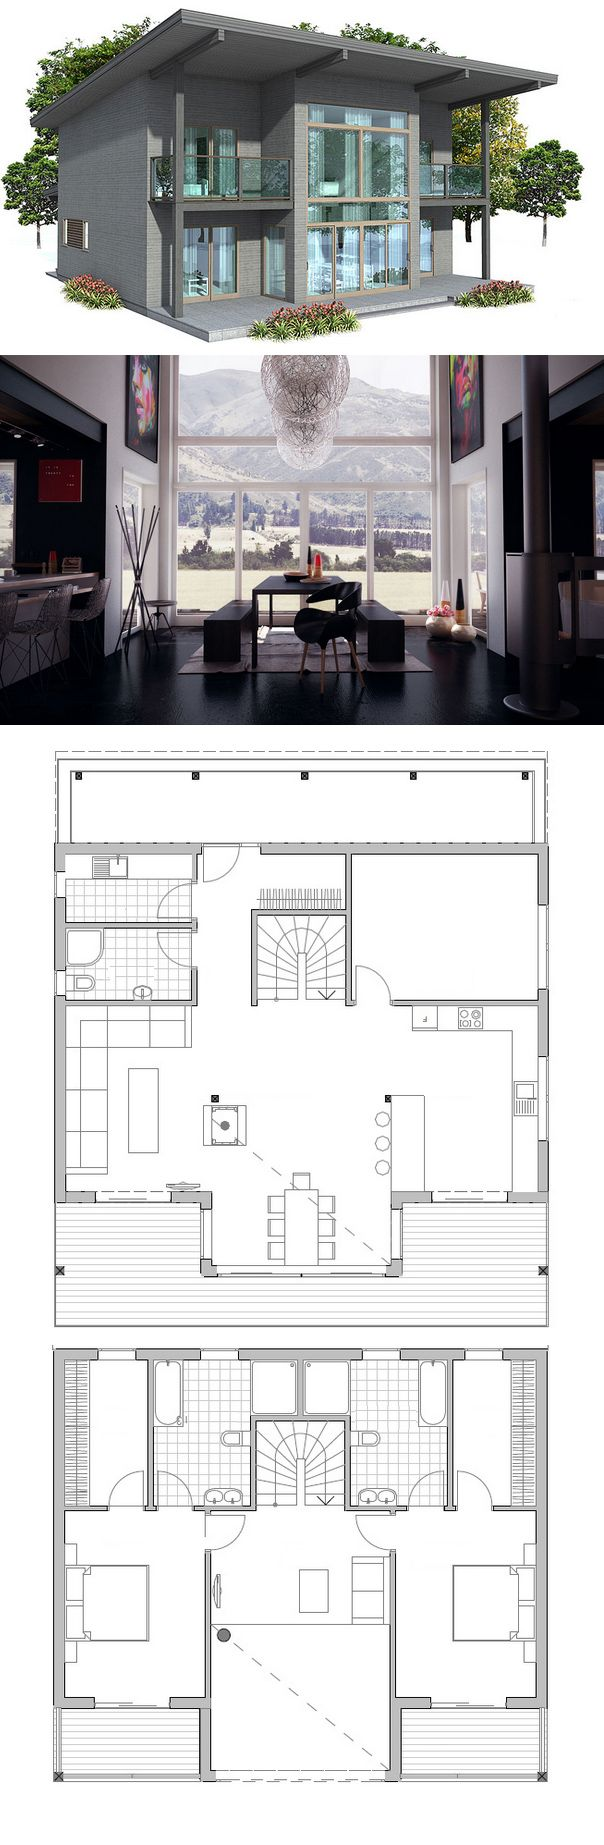 House Plan 30 best House plans images